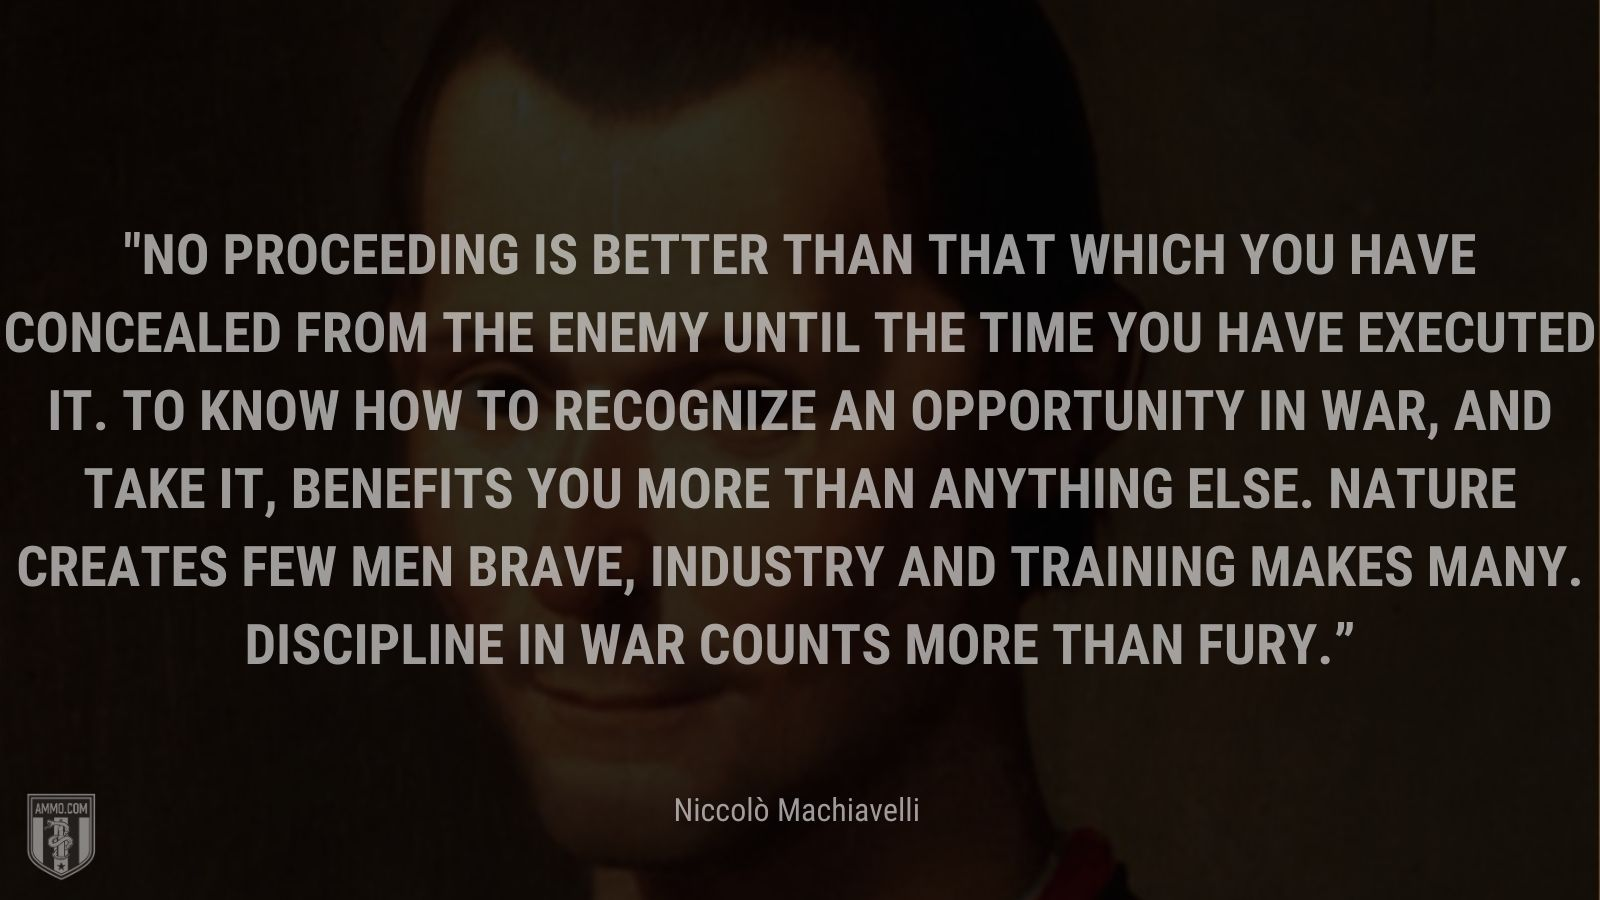 """""""No proceeding is better than that which you have concealed from the enemy until the time you have executed it. To know how to recognize an opportunity in war, and take it, benefits you more than anything else. Nature creates few men brave, industry and training makes many. Discipline in war counts more than fury."""" - Niccolò Machiavelli"""